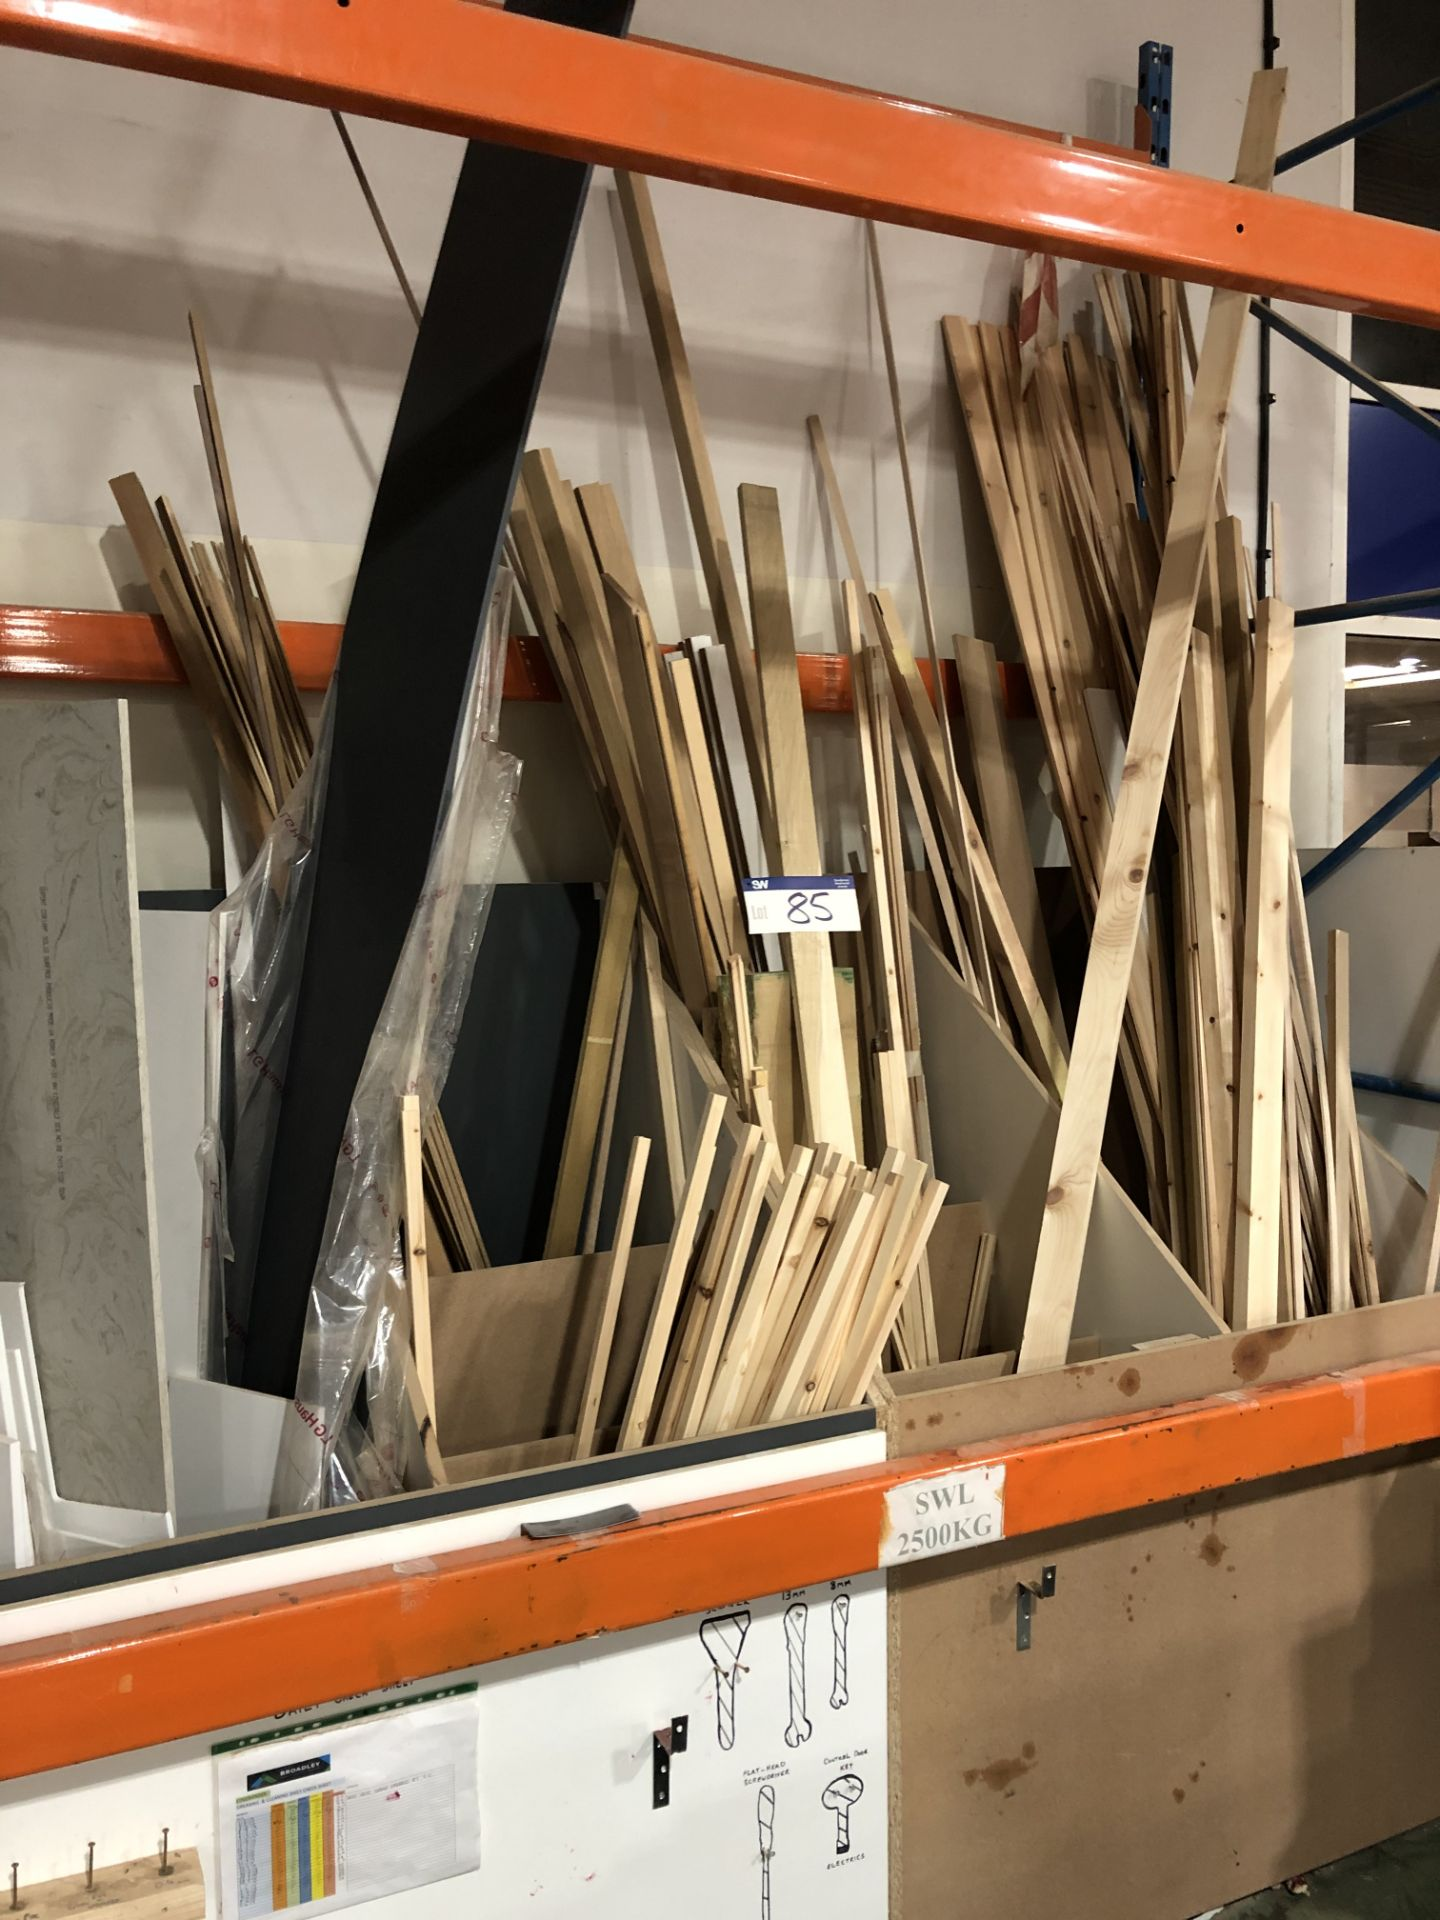 Lot 85 - Contents to the Rack Including Various Beading and Timber